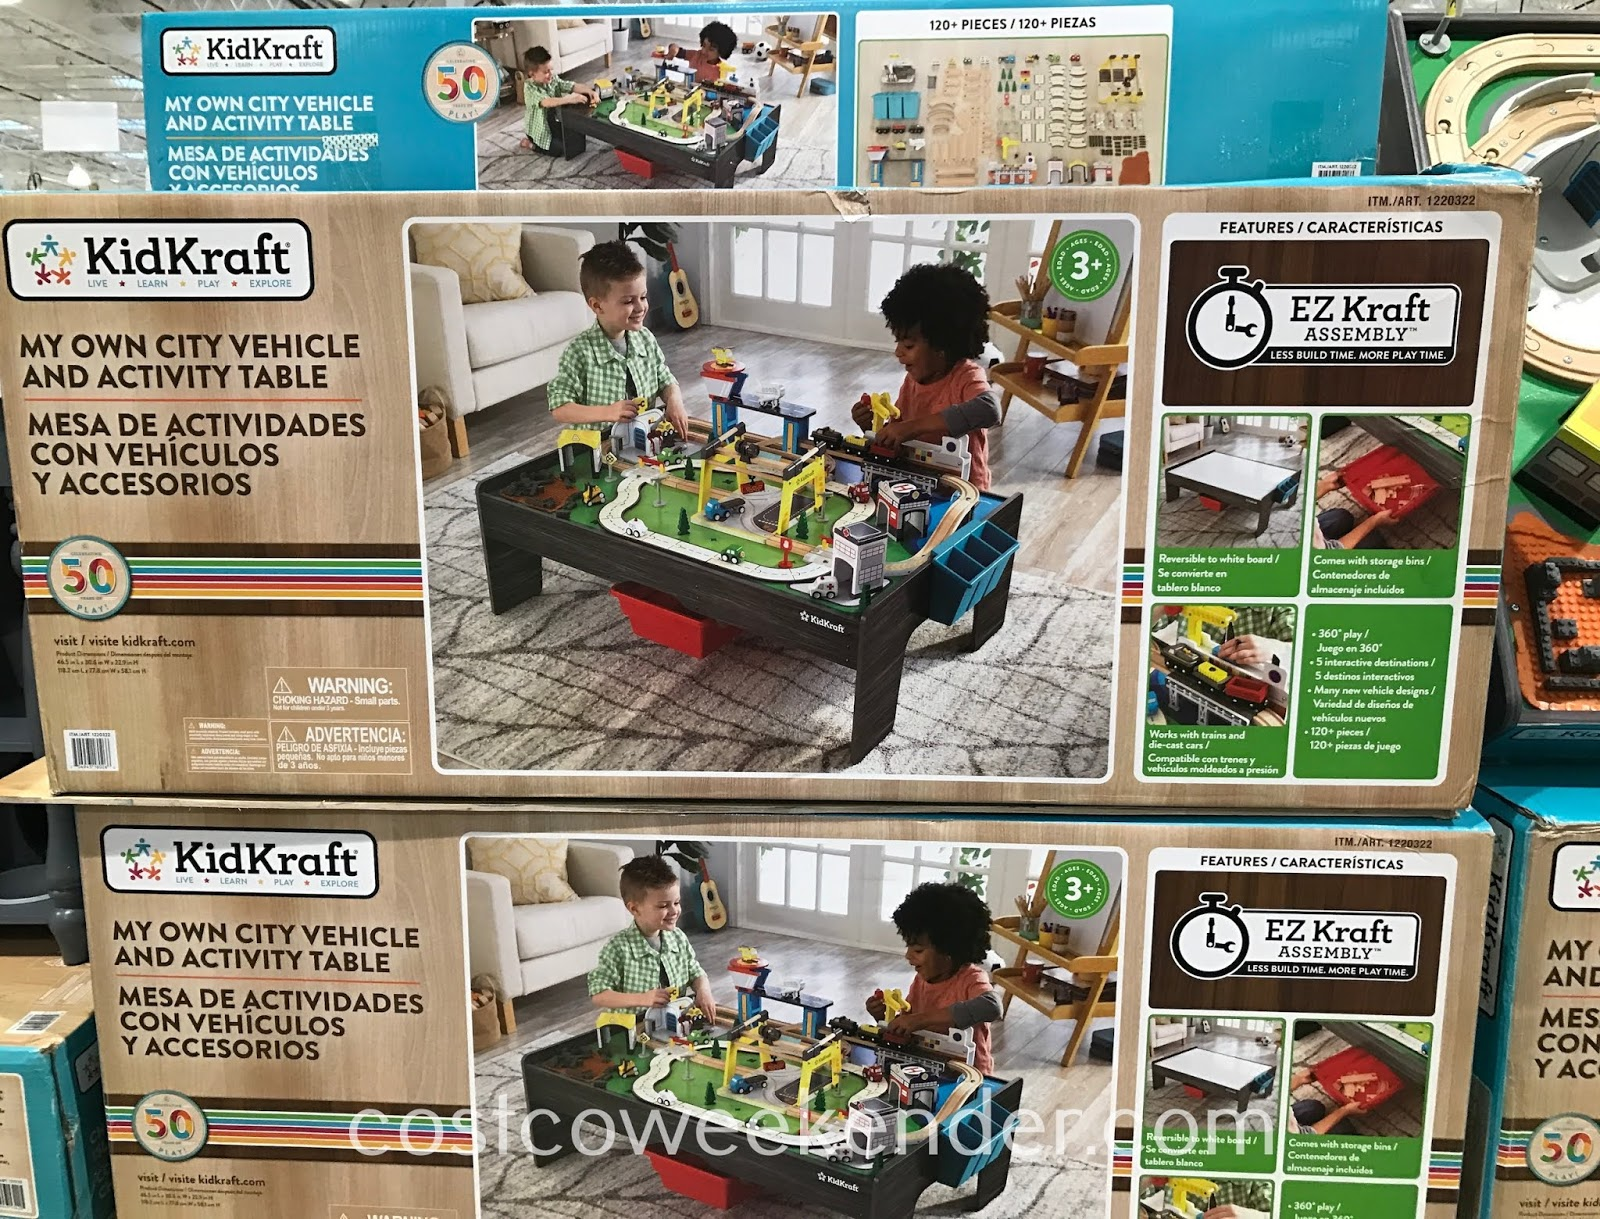 Costco 1220322 - KidKraft My Own City Vehicle and Activity Table: great for any child's bedroom or playroom